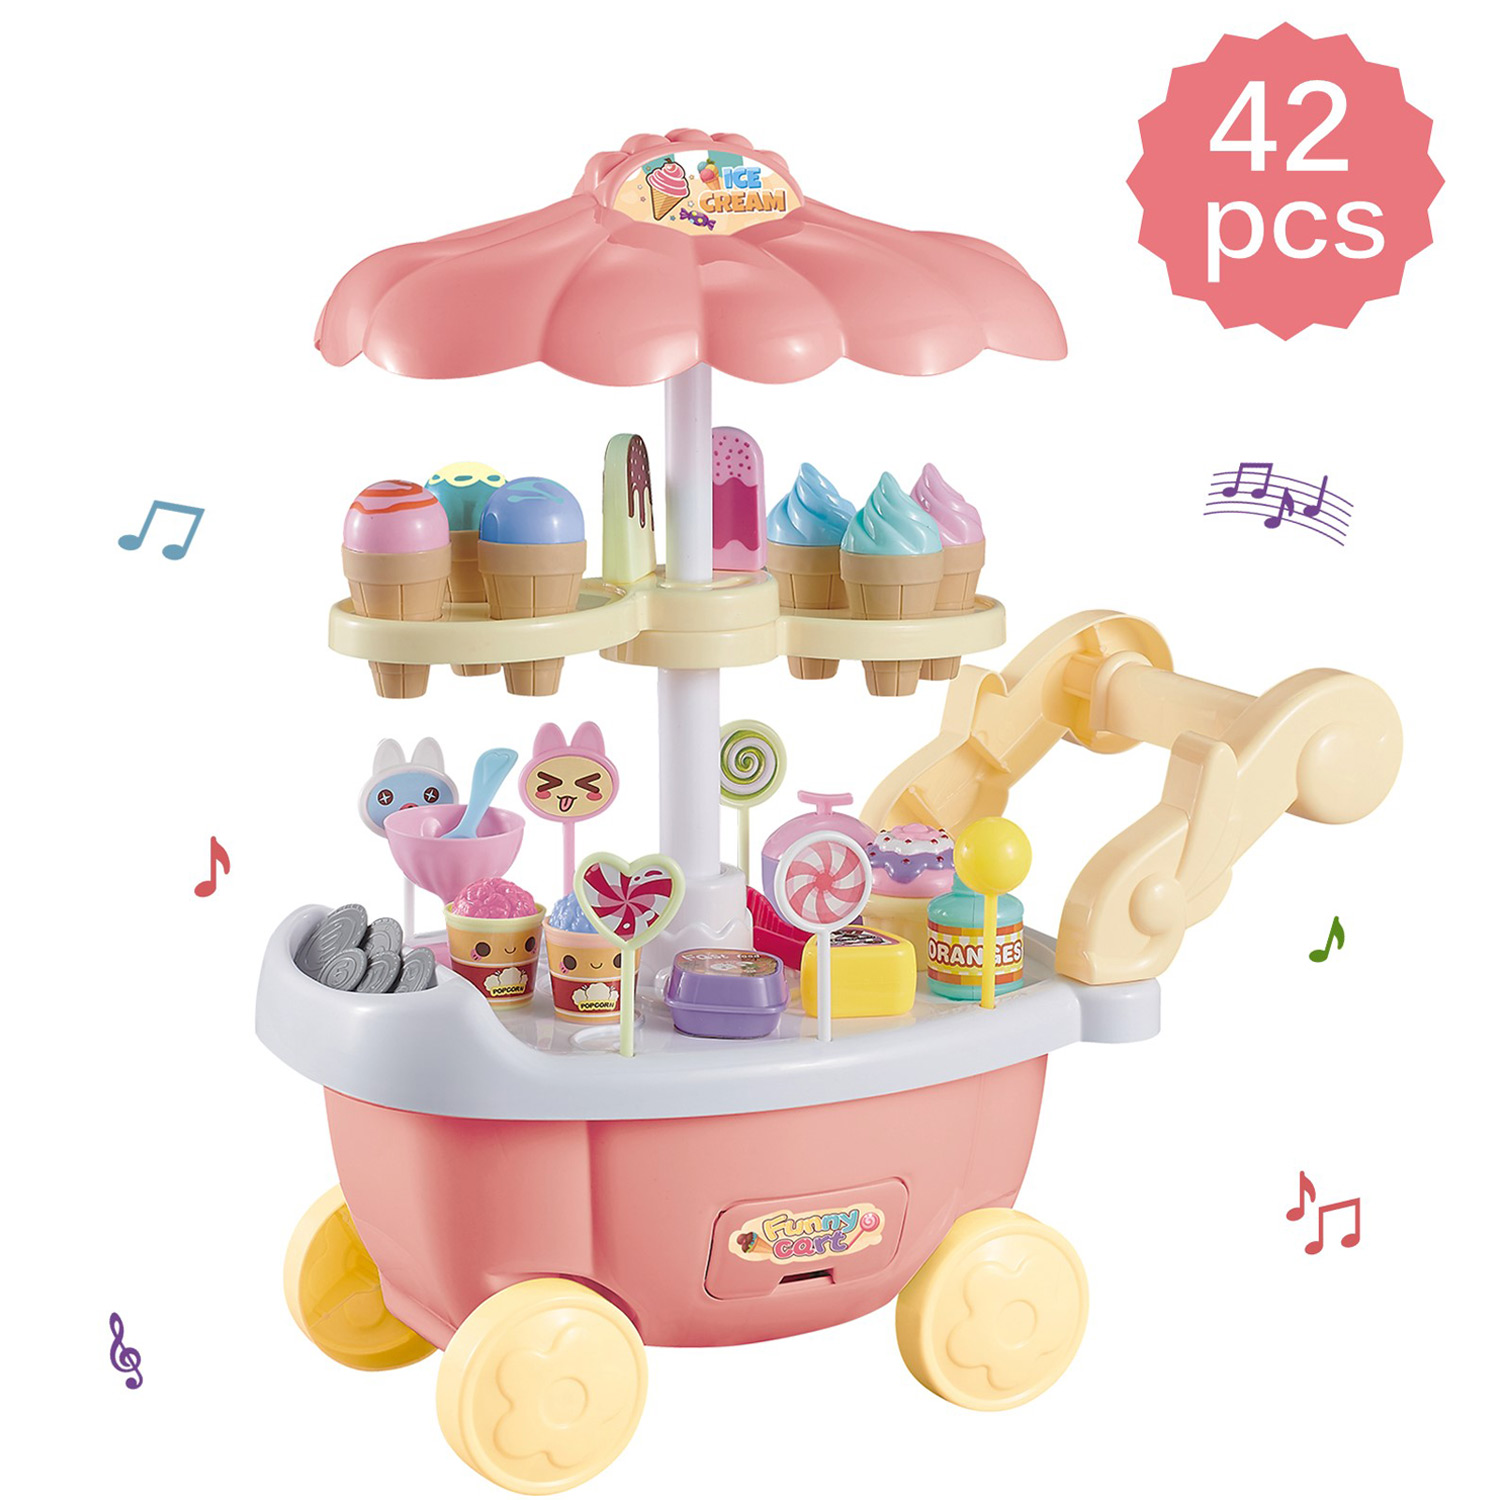 Ice Cream Cart 39 Pieces Dessert Candy Trolley Kitchen Toy Set With Lights Music Includes Umbrella Food Accessories 3 feet tall Children's Pretend Play Truck Playset Appliance Set Pieces Perfect For Early Learning Educational Girls Cooking